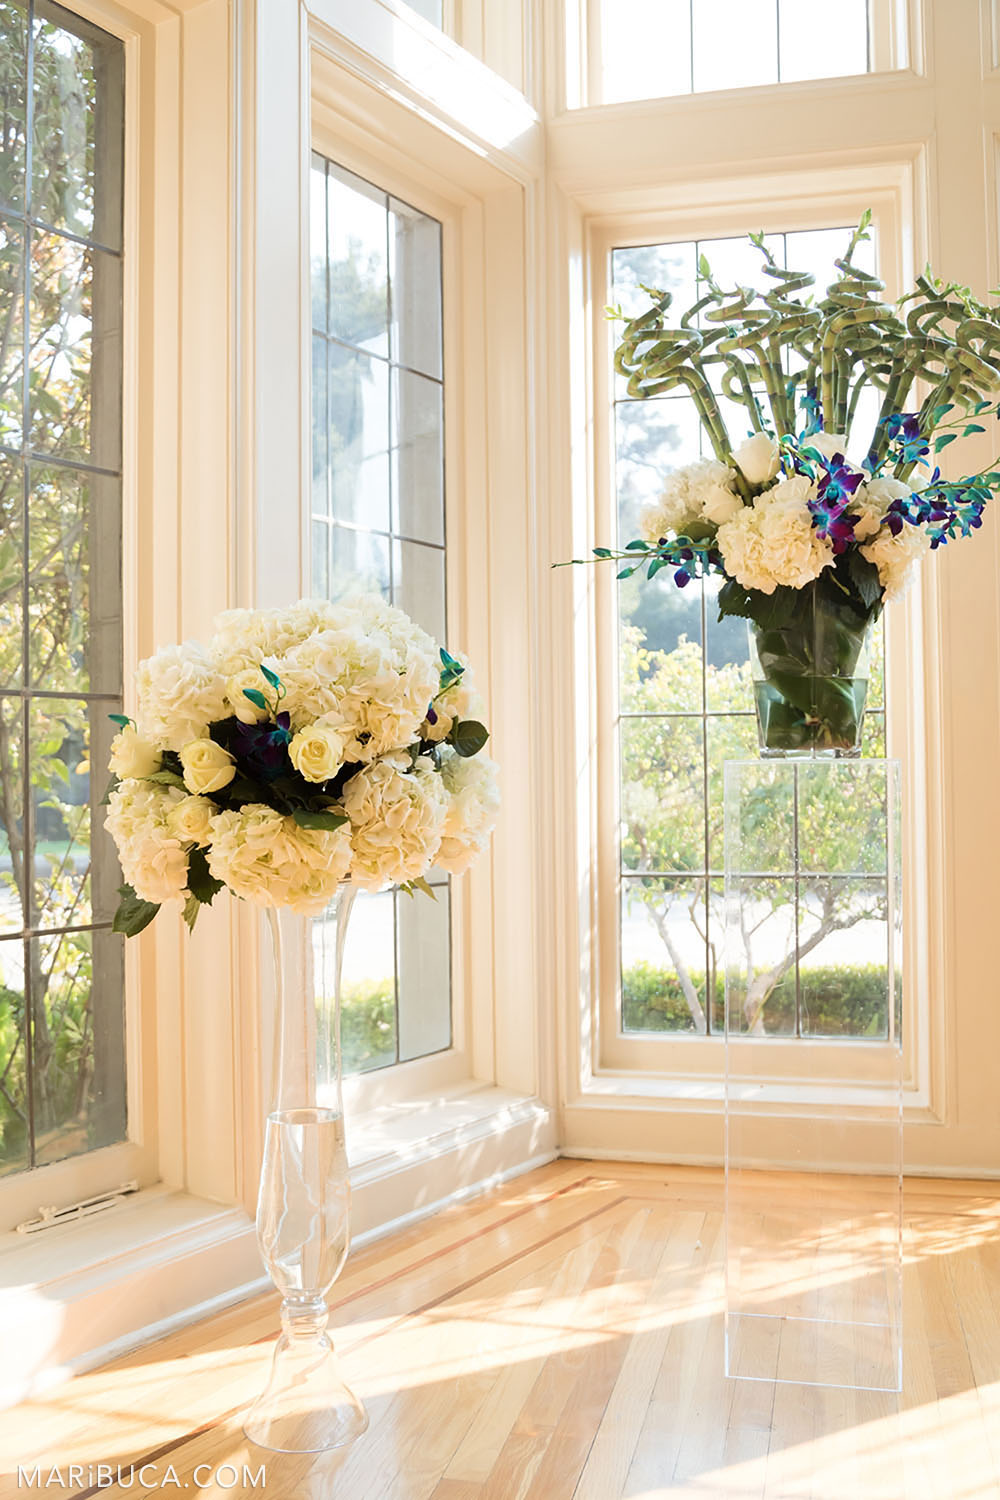 the white hall for the wedding ceremony is decorated with white flowers in the high vases in the sunny day, Dining room, Kohl Mansion, Burlingame